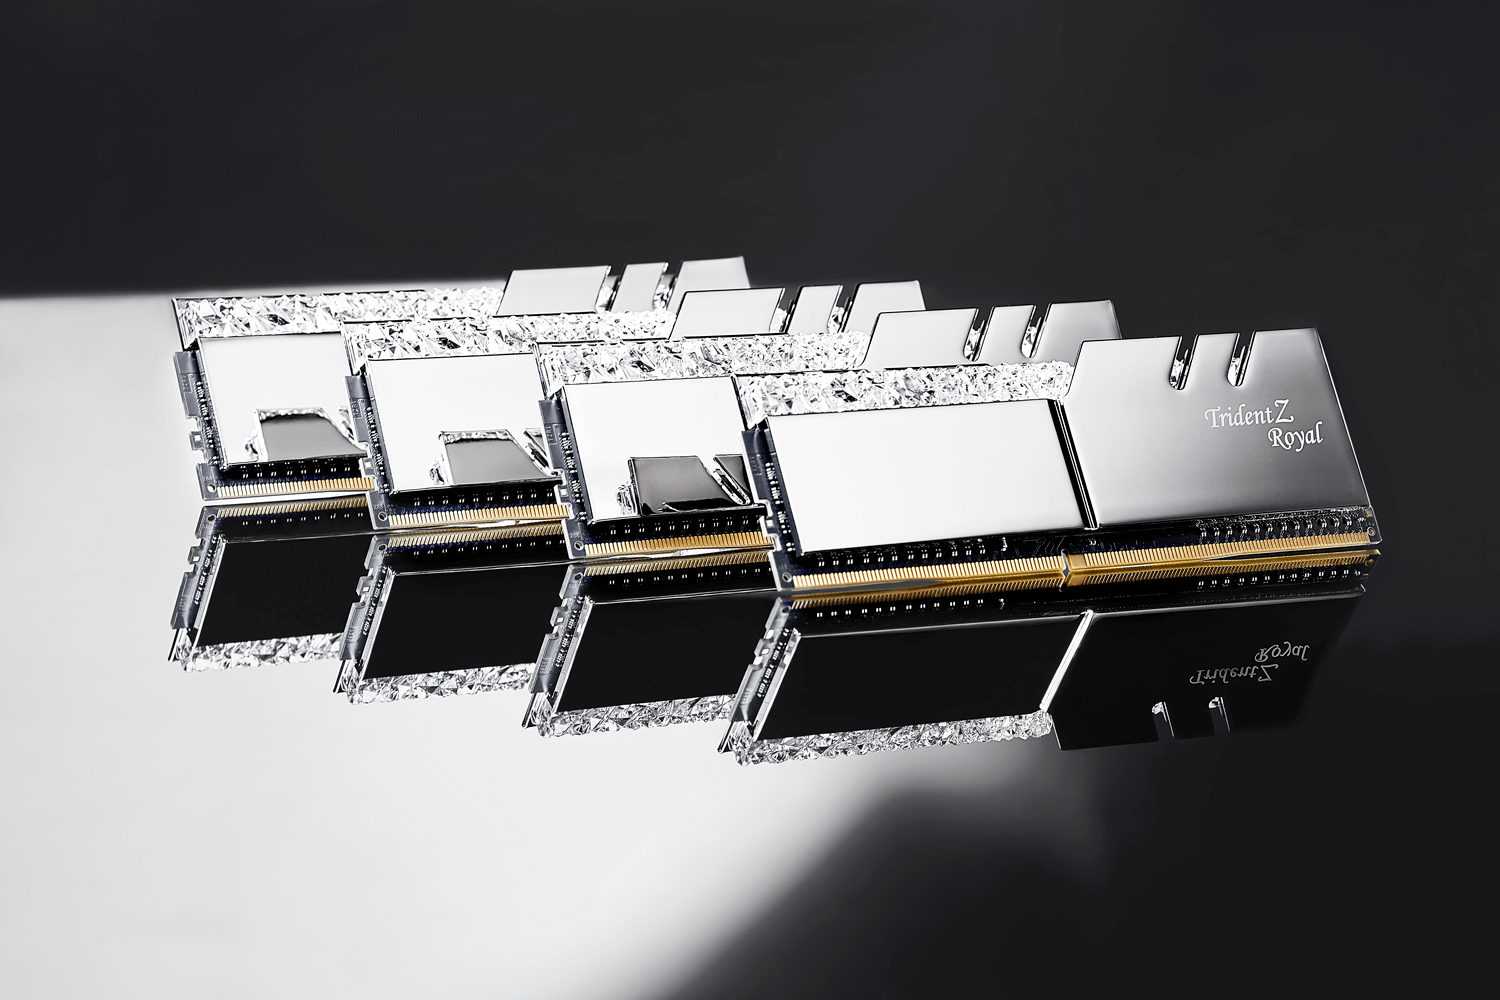 G Skill introduces the Trident Z Royal Series with crystals